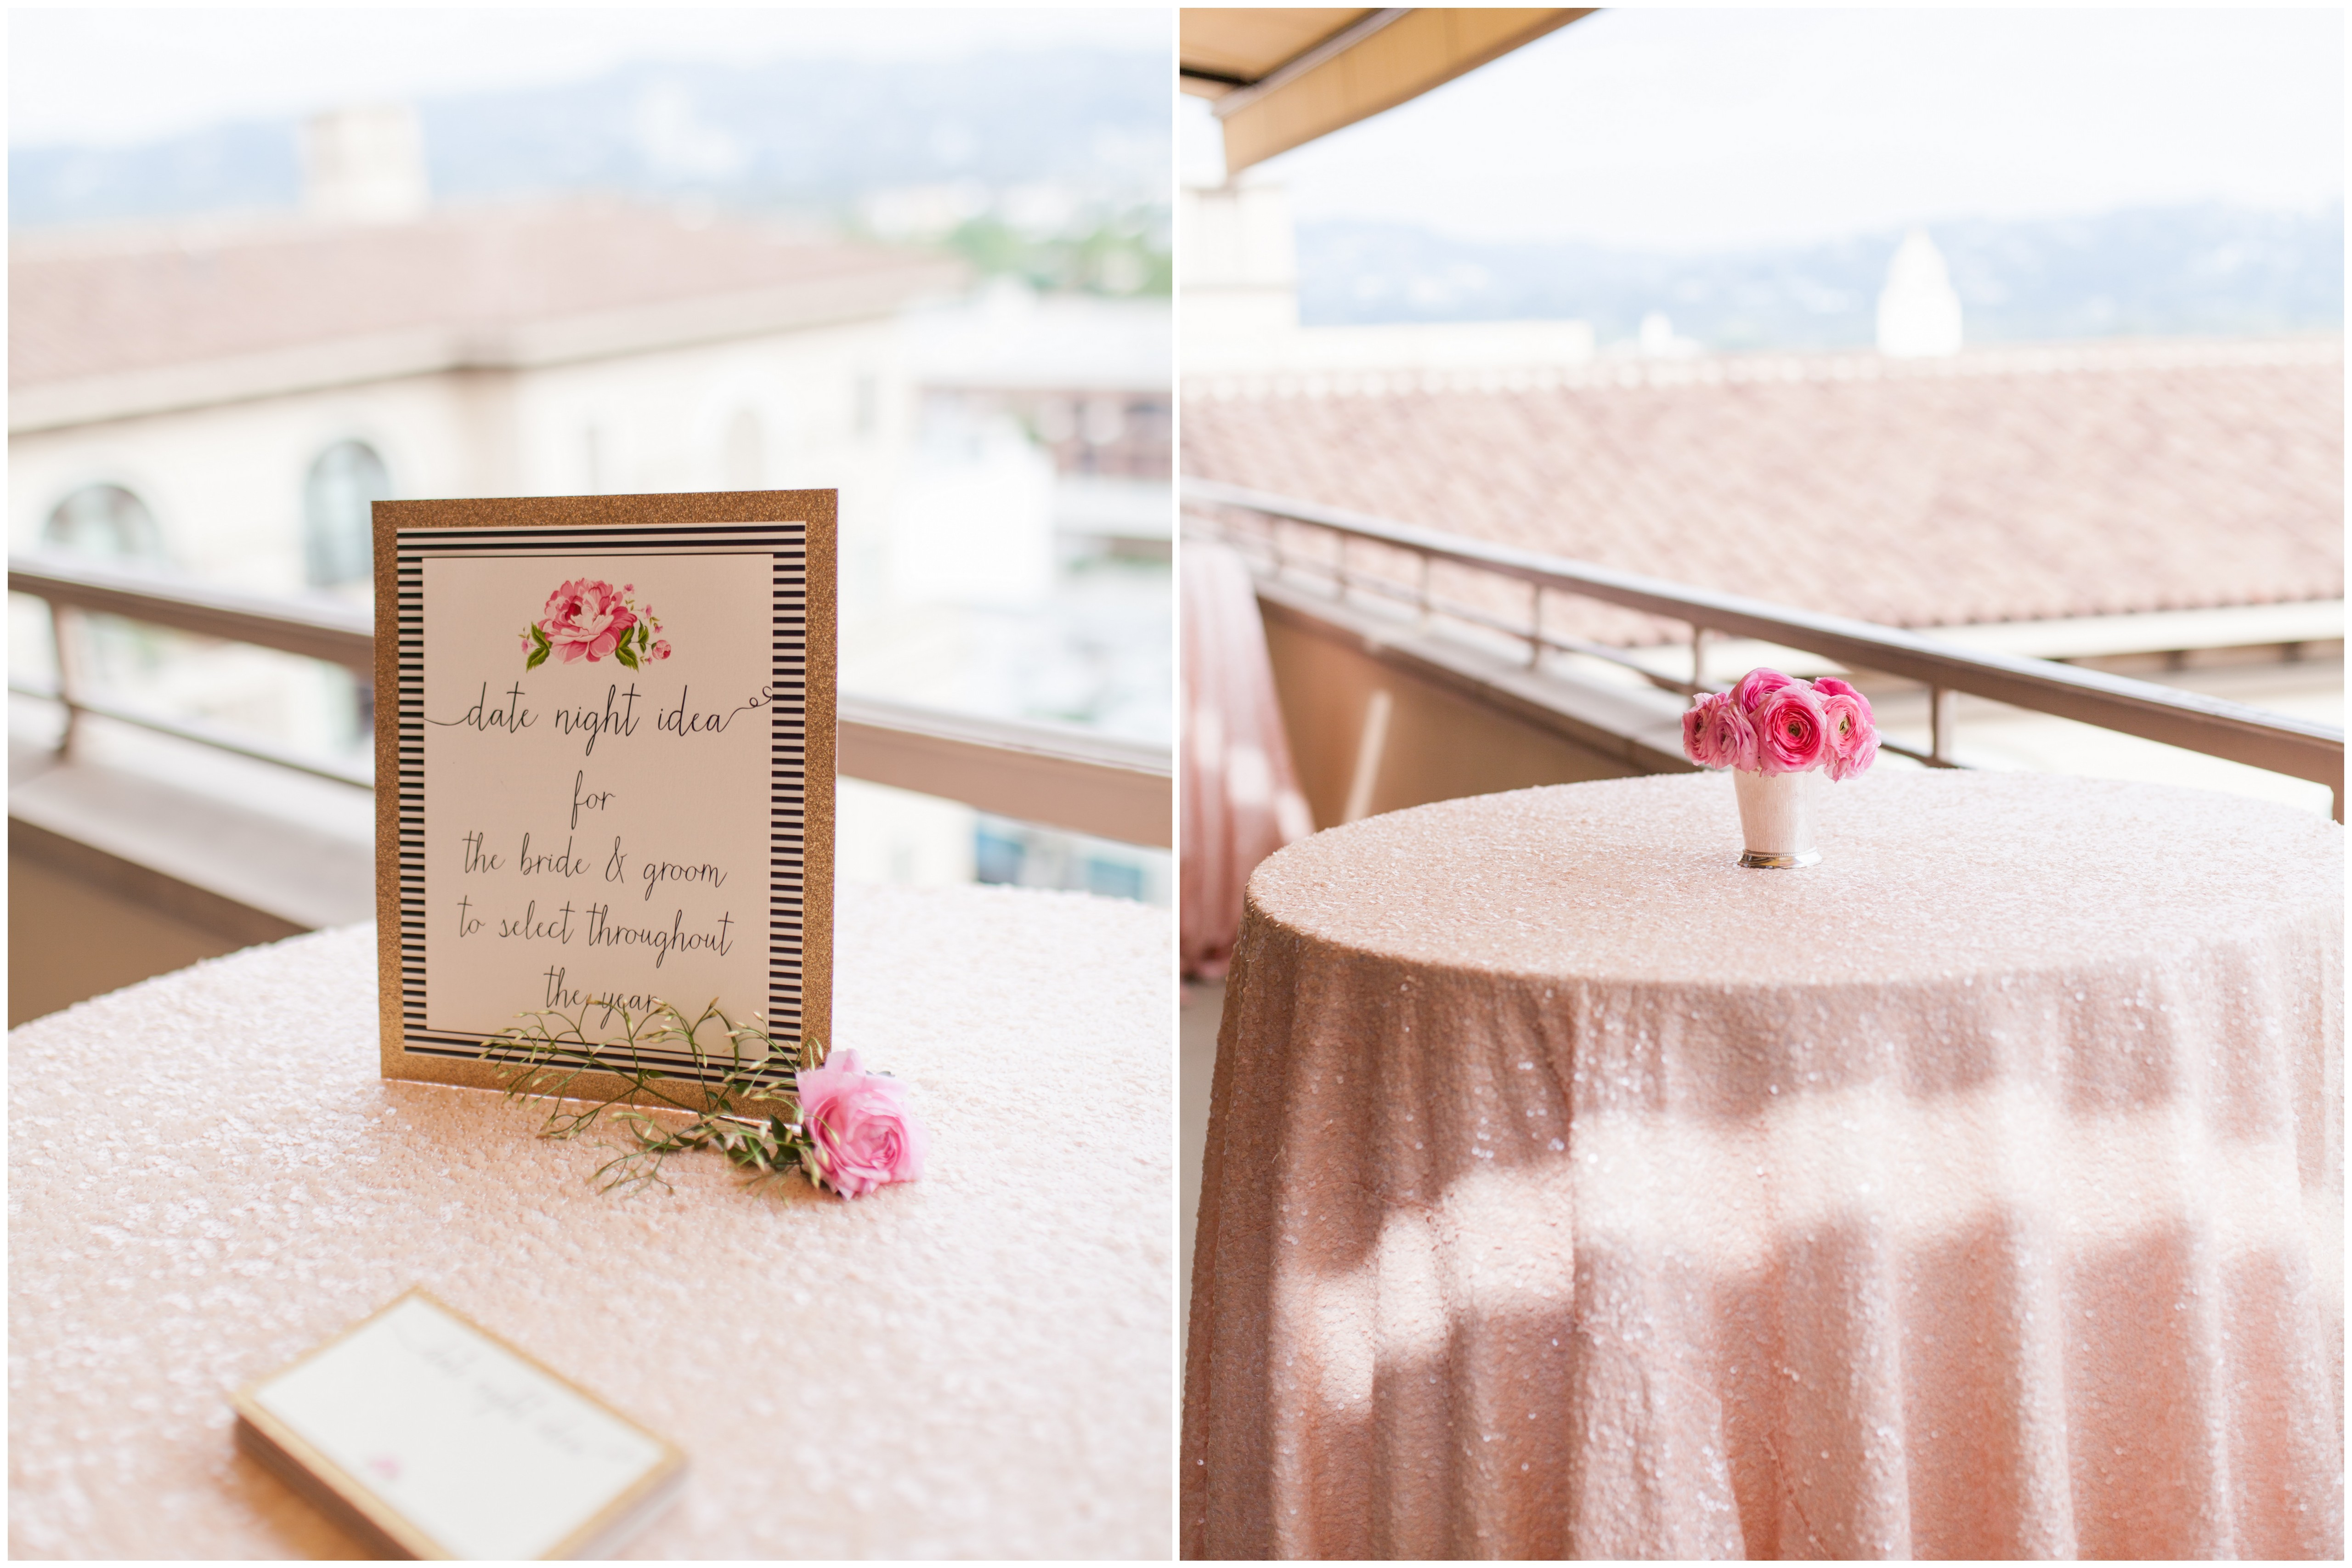 Madison's Kate Spade Bridal Shower Date Ideas